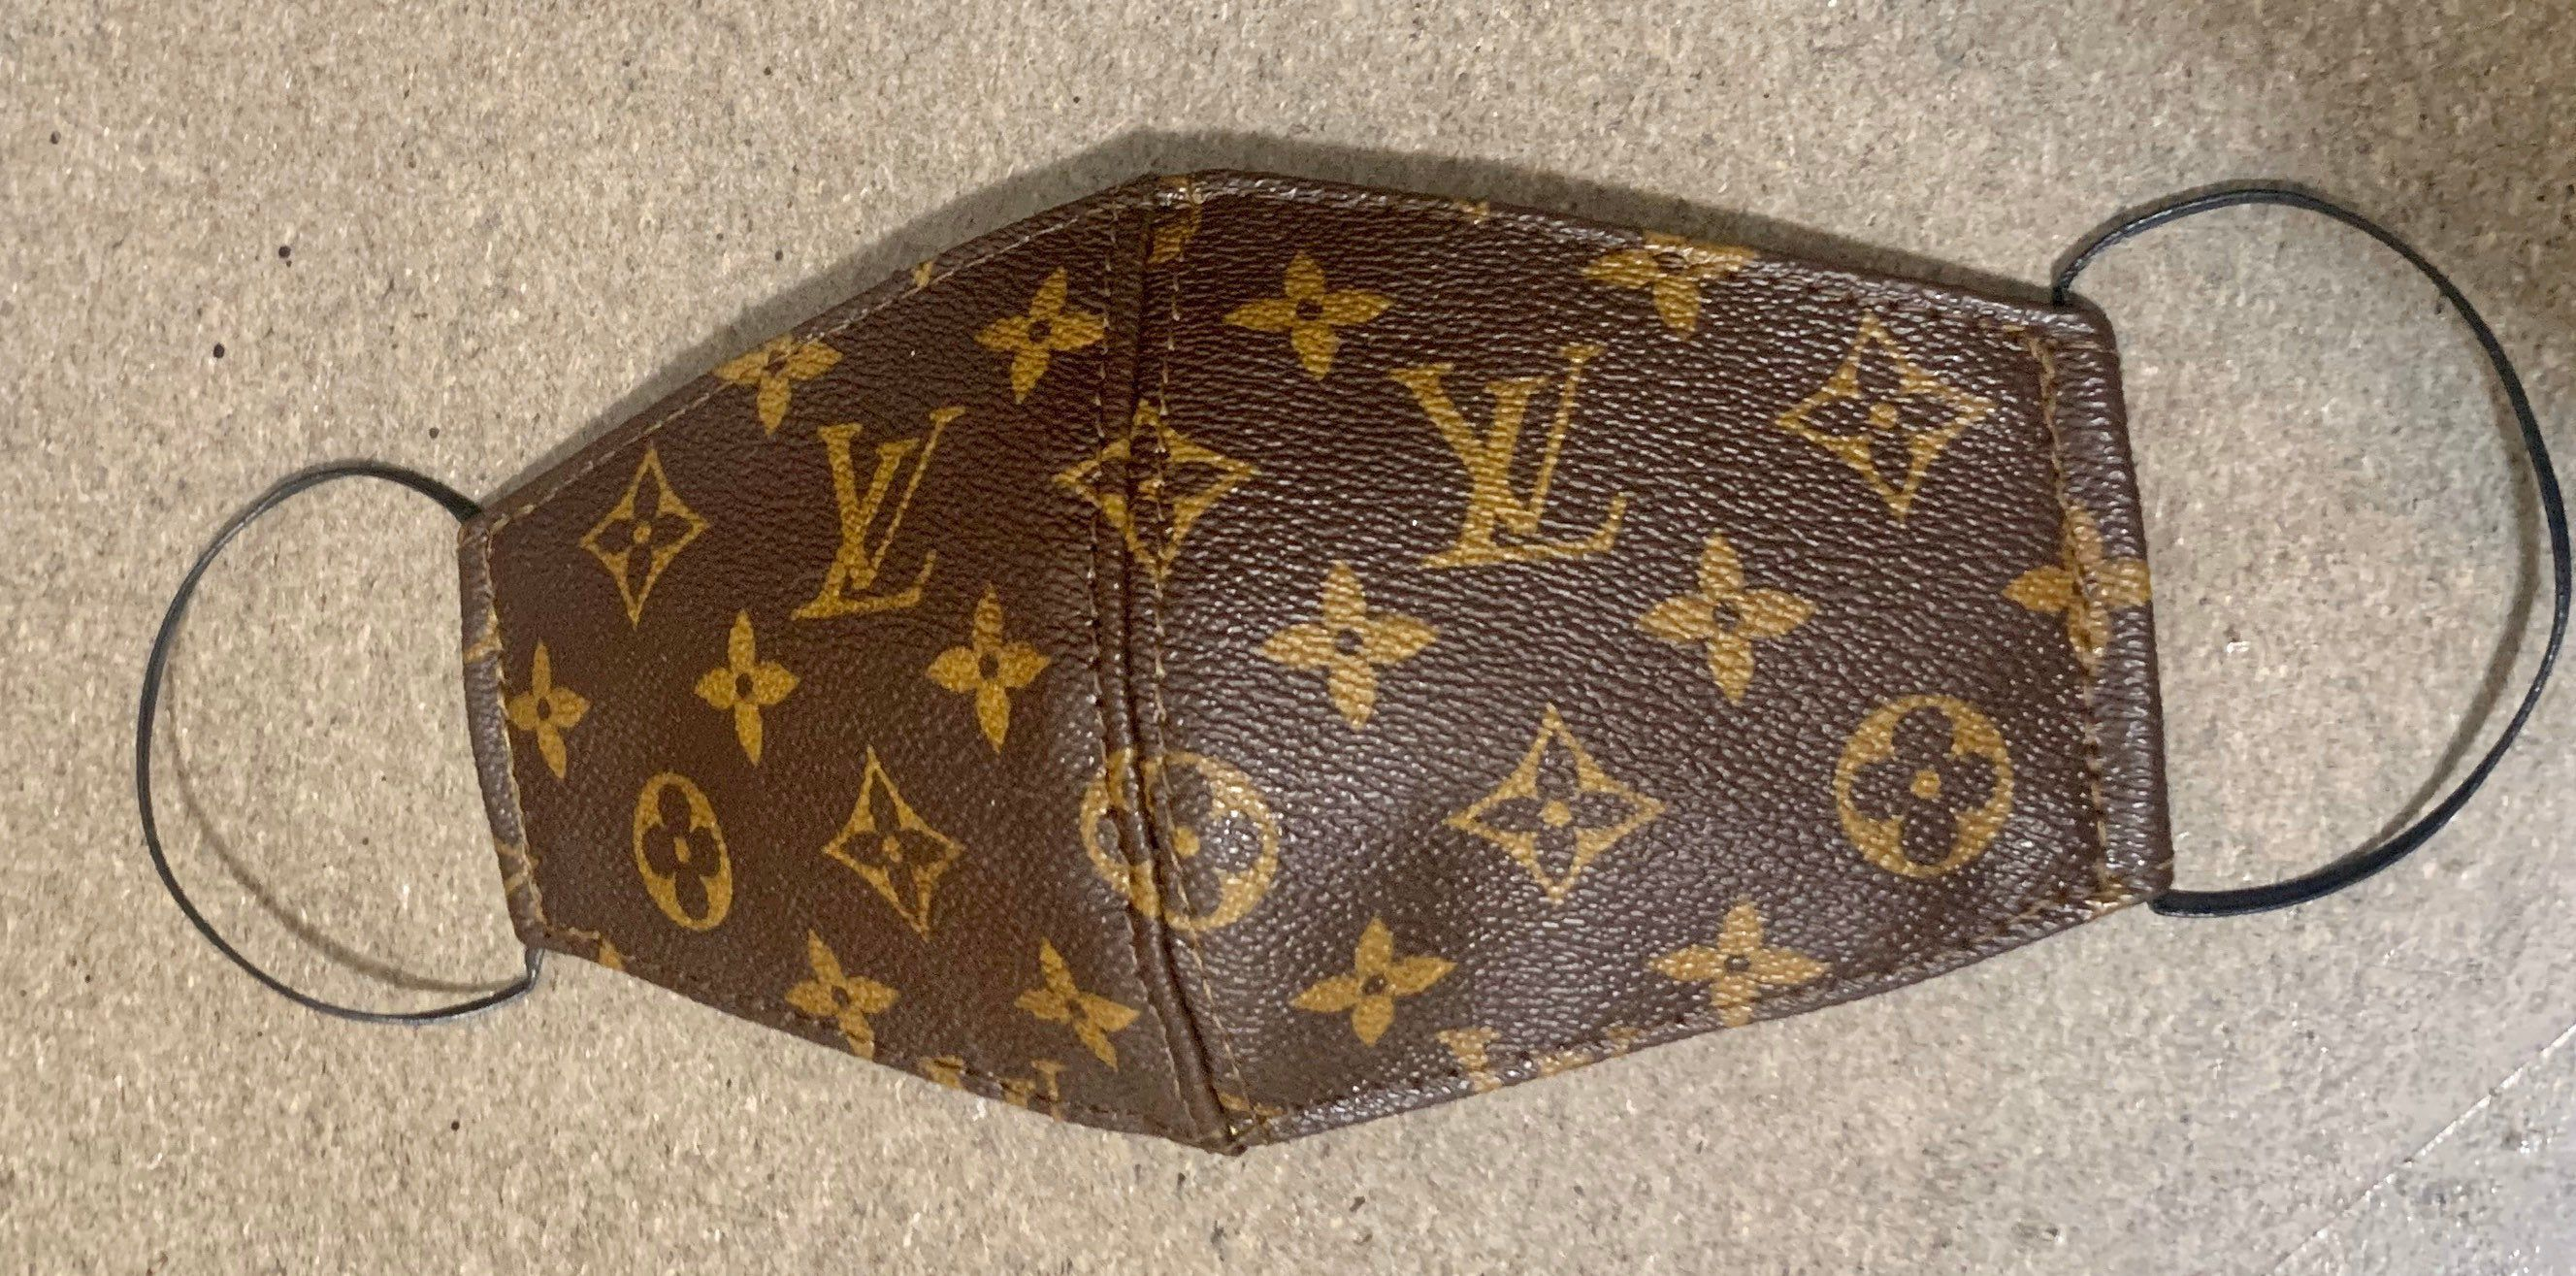 louis vuitton face mask Excited to share this item from my shop: Repurposed Louis